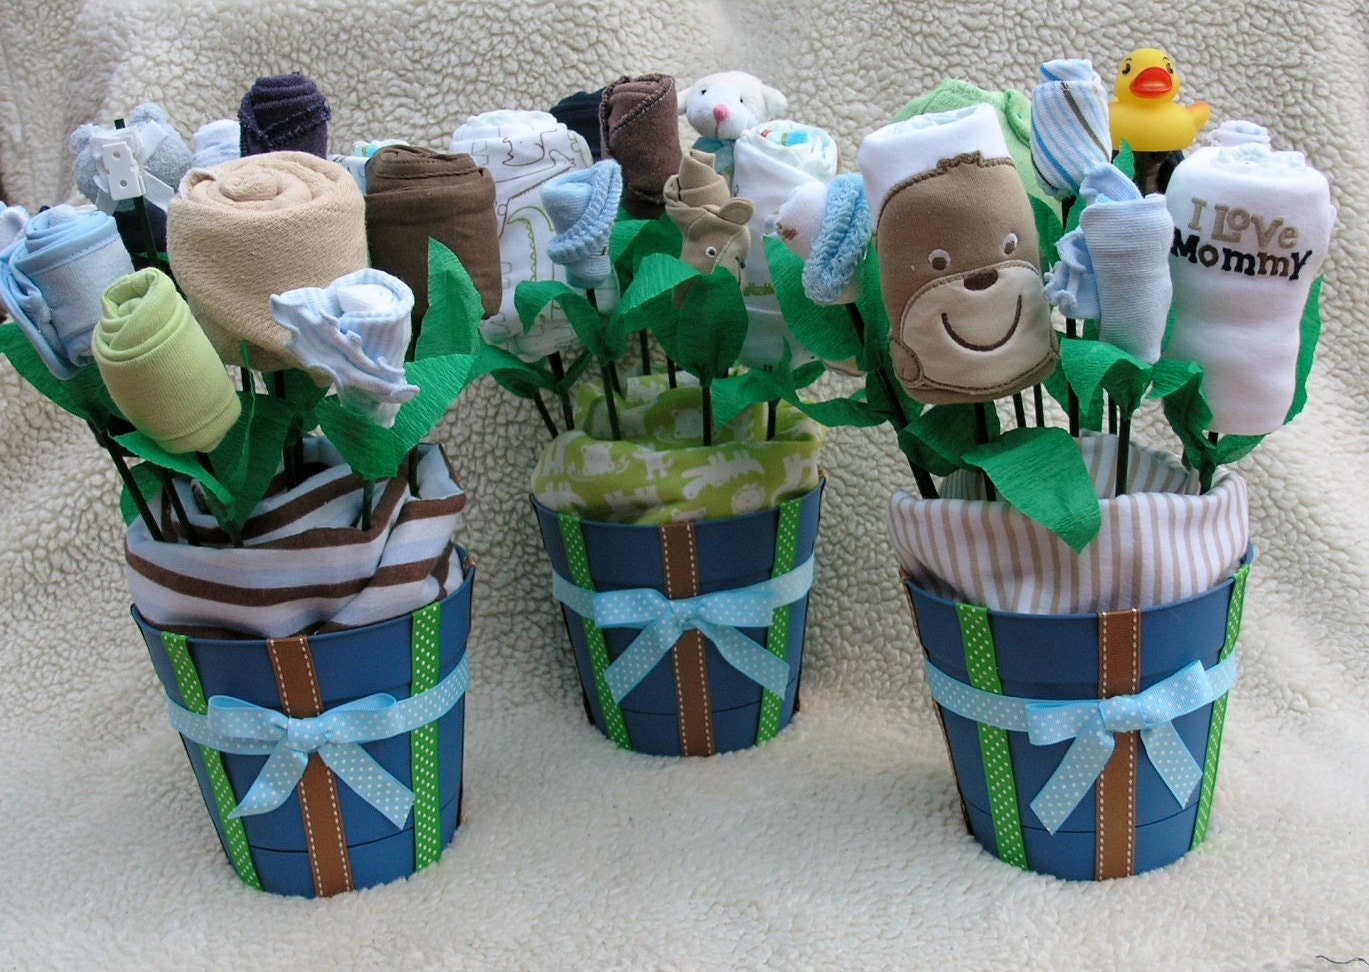 Duck baby shower on pinterest rubber duck baby boy for Baby shower favors decoration